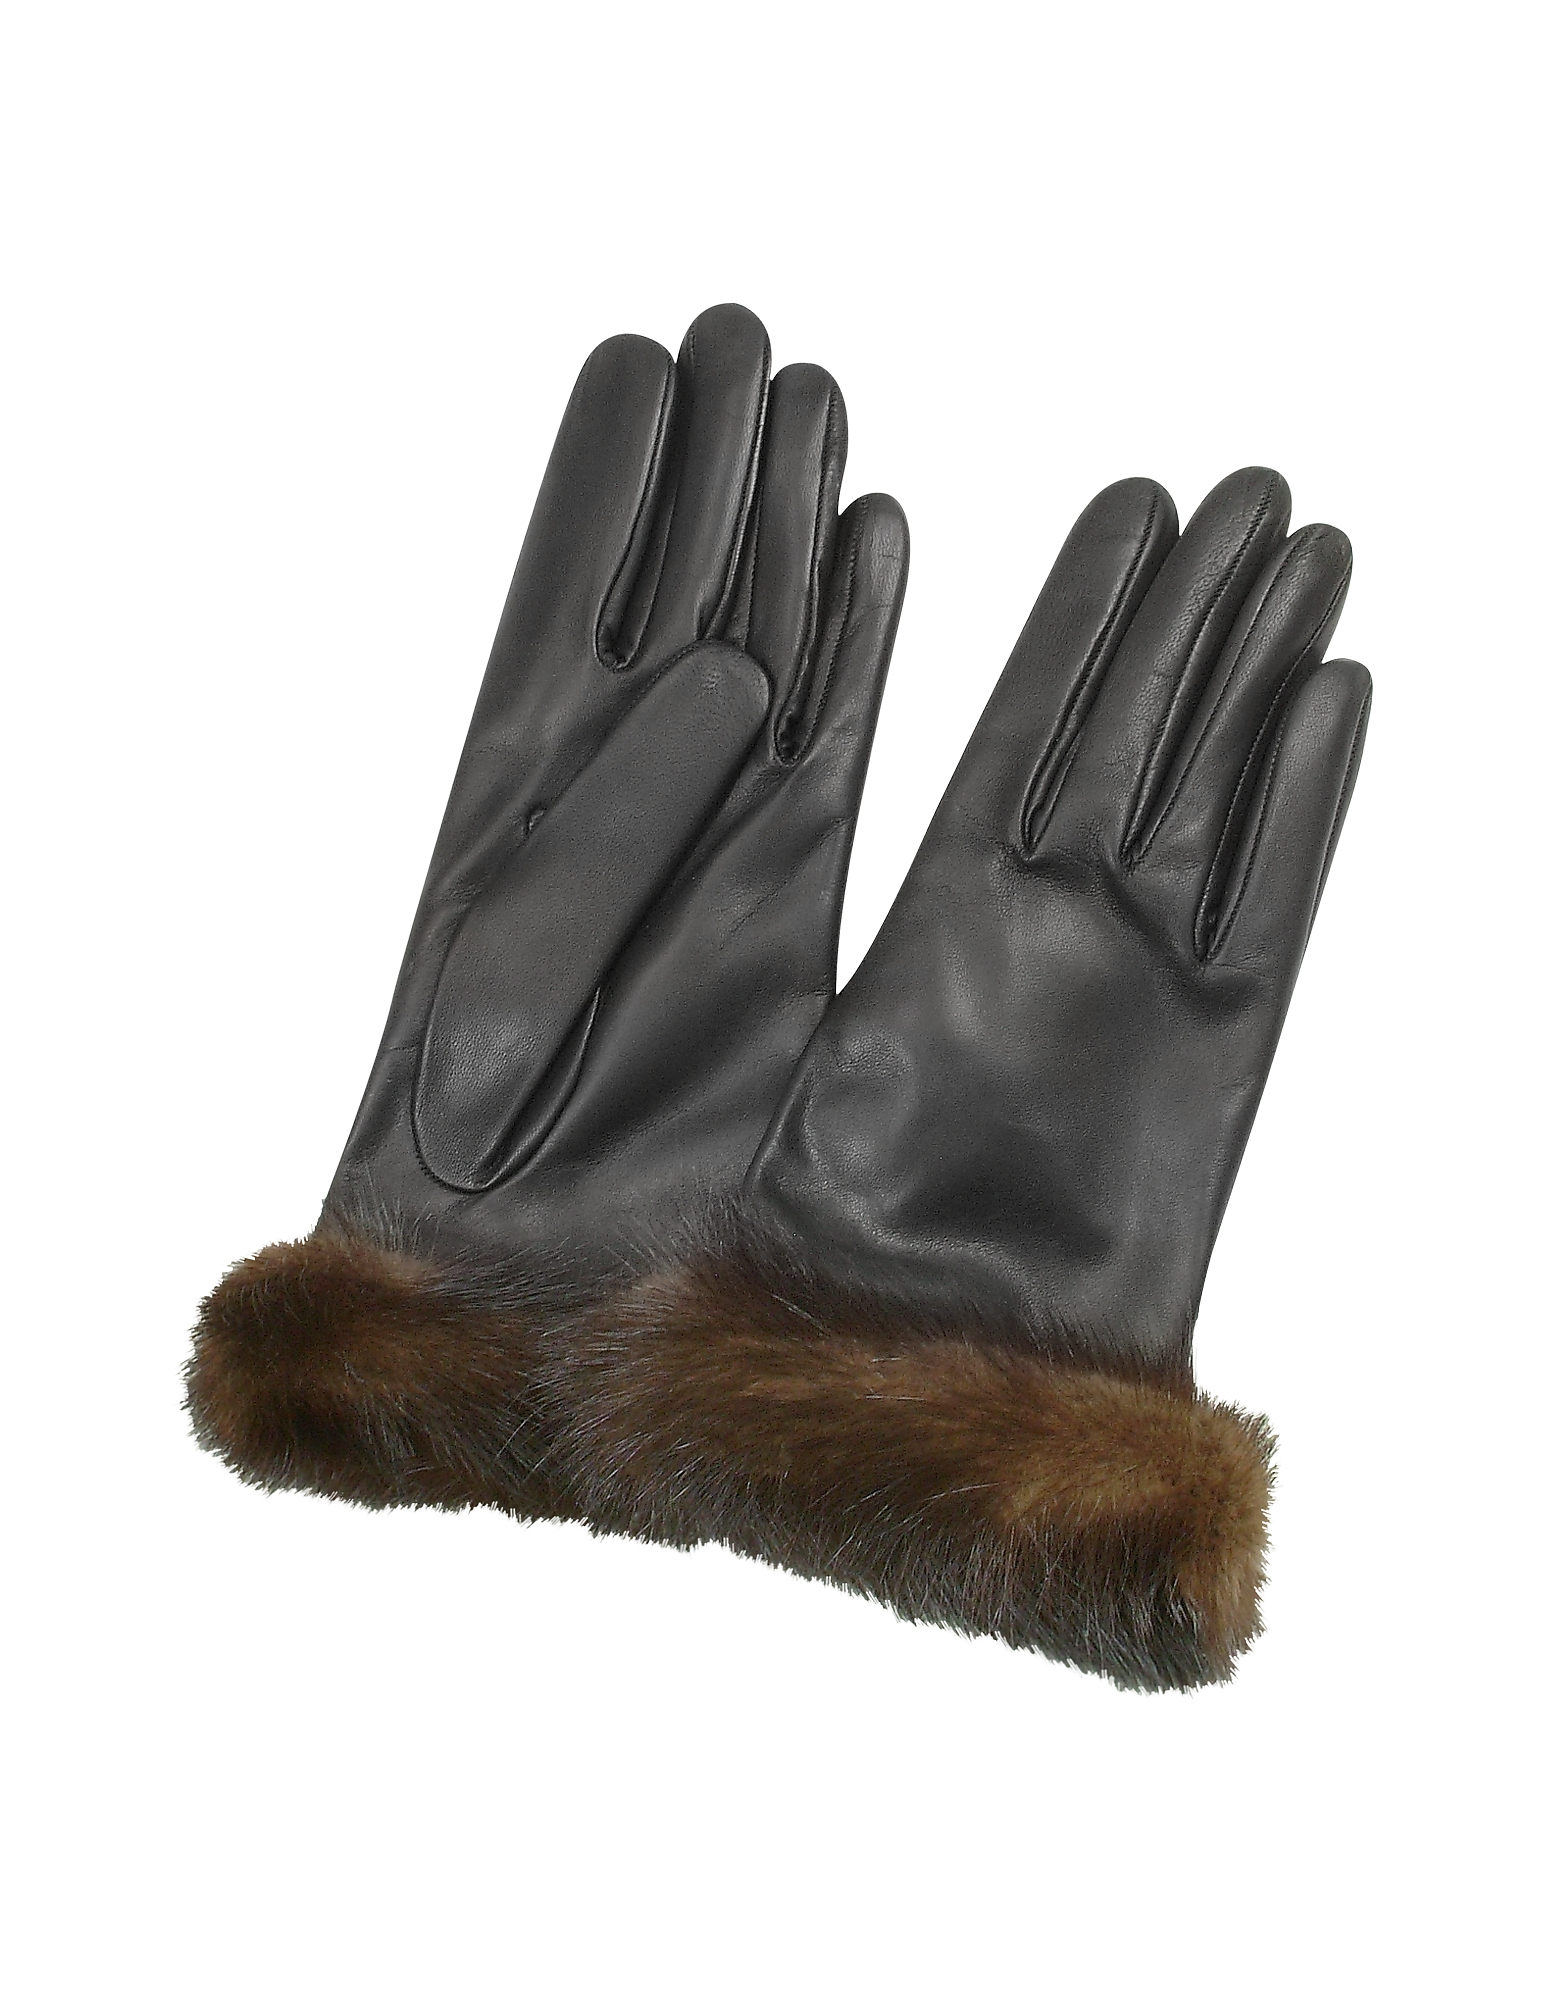 Forzieri Women's Black Italian Nappa Leather Gloves